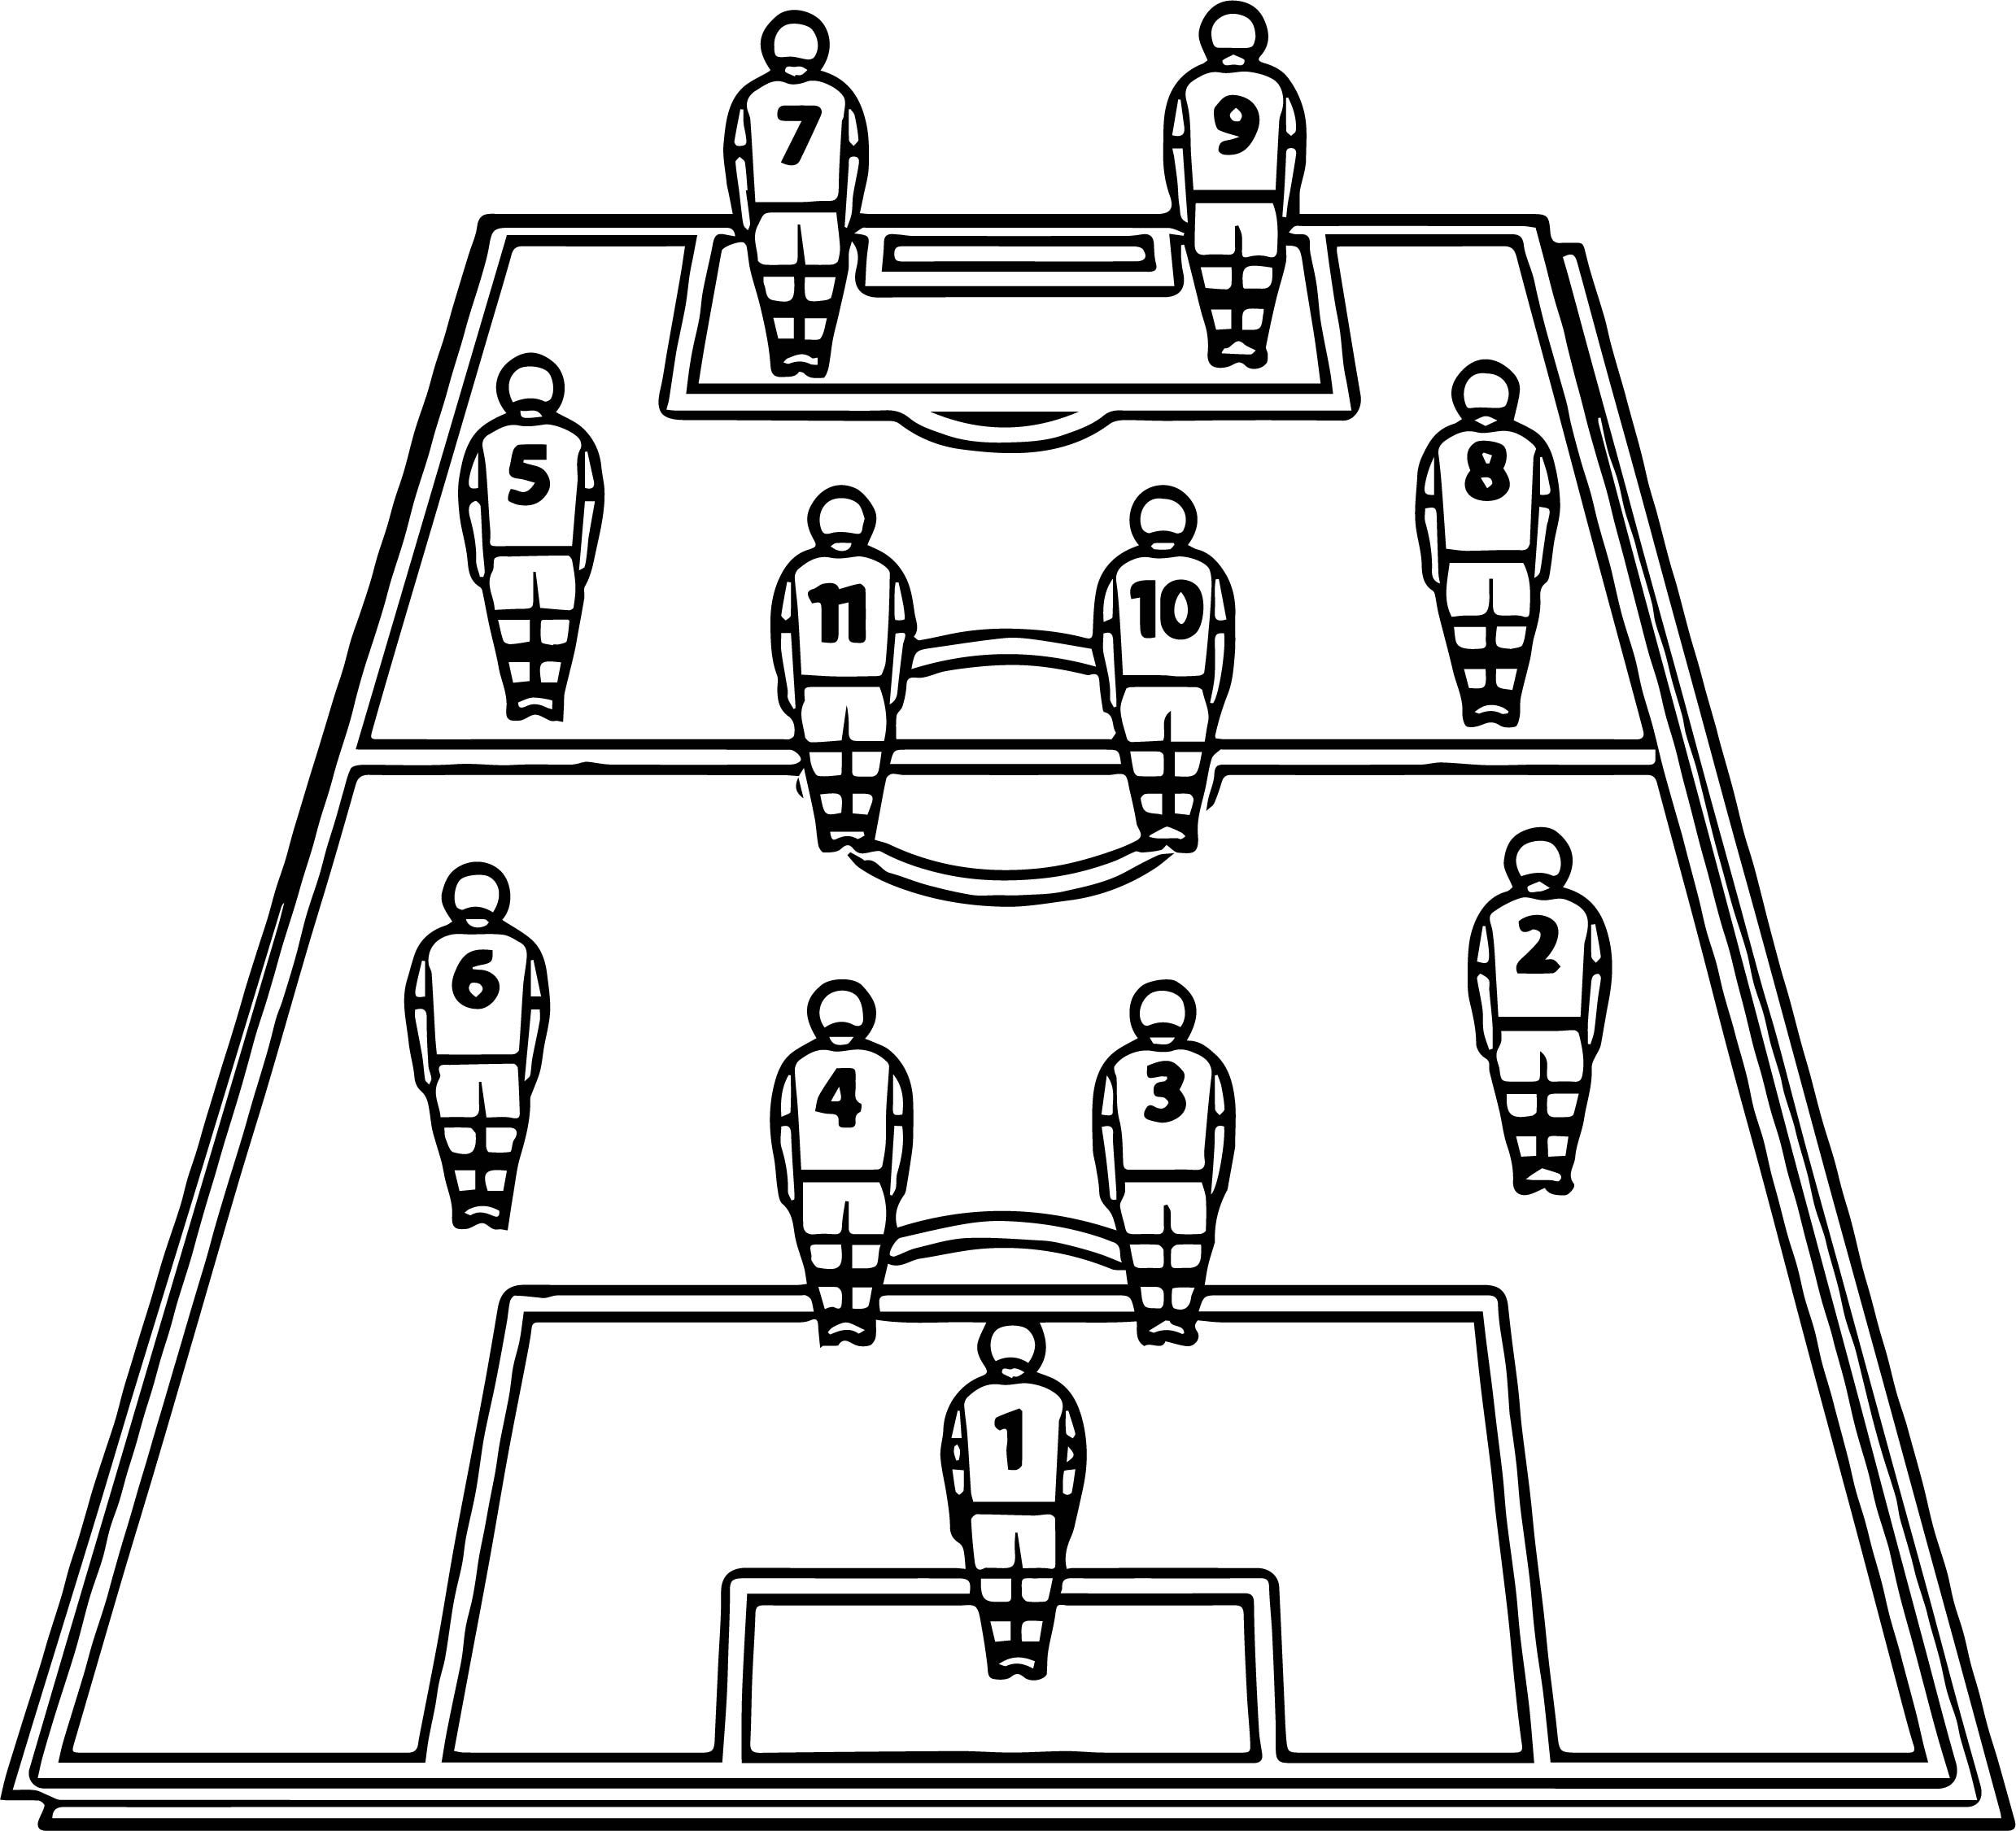 Cool Soccer Football Tactics Board Players Field Coloring Page Sports Coloring Pages Football Tactics Football Tactics Board